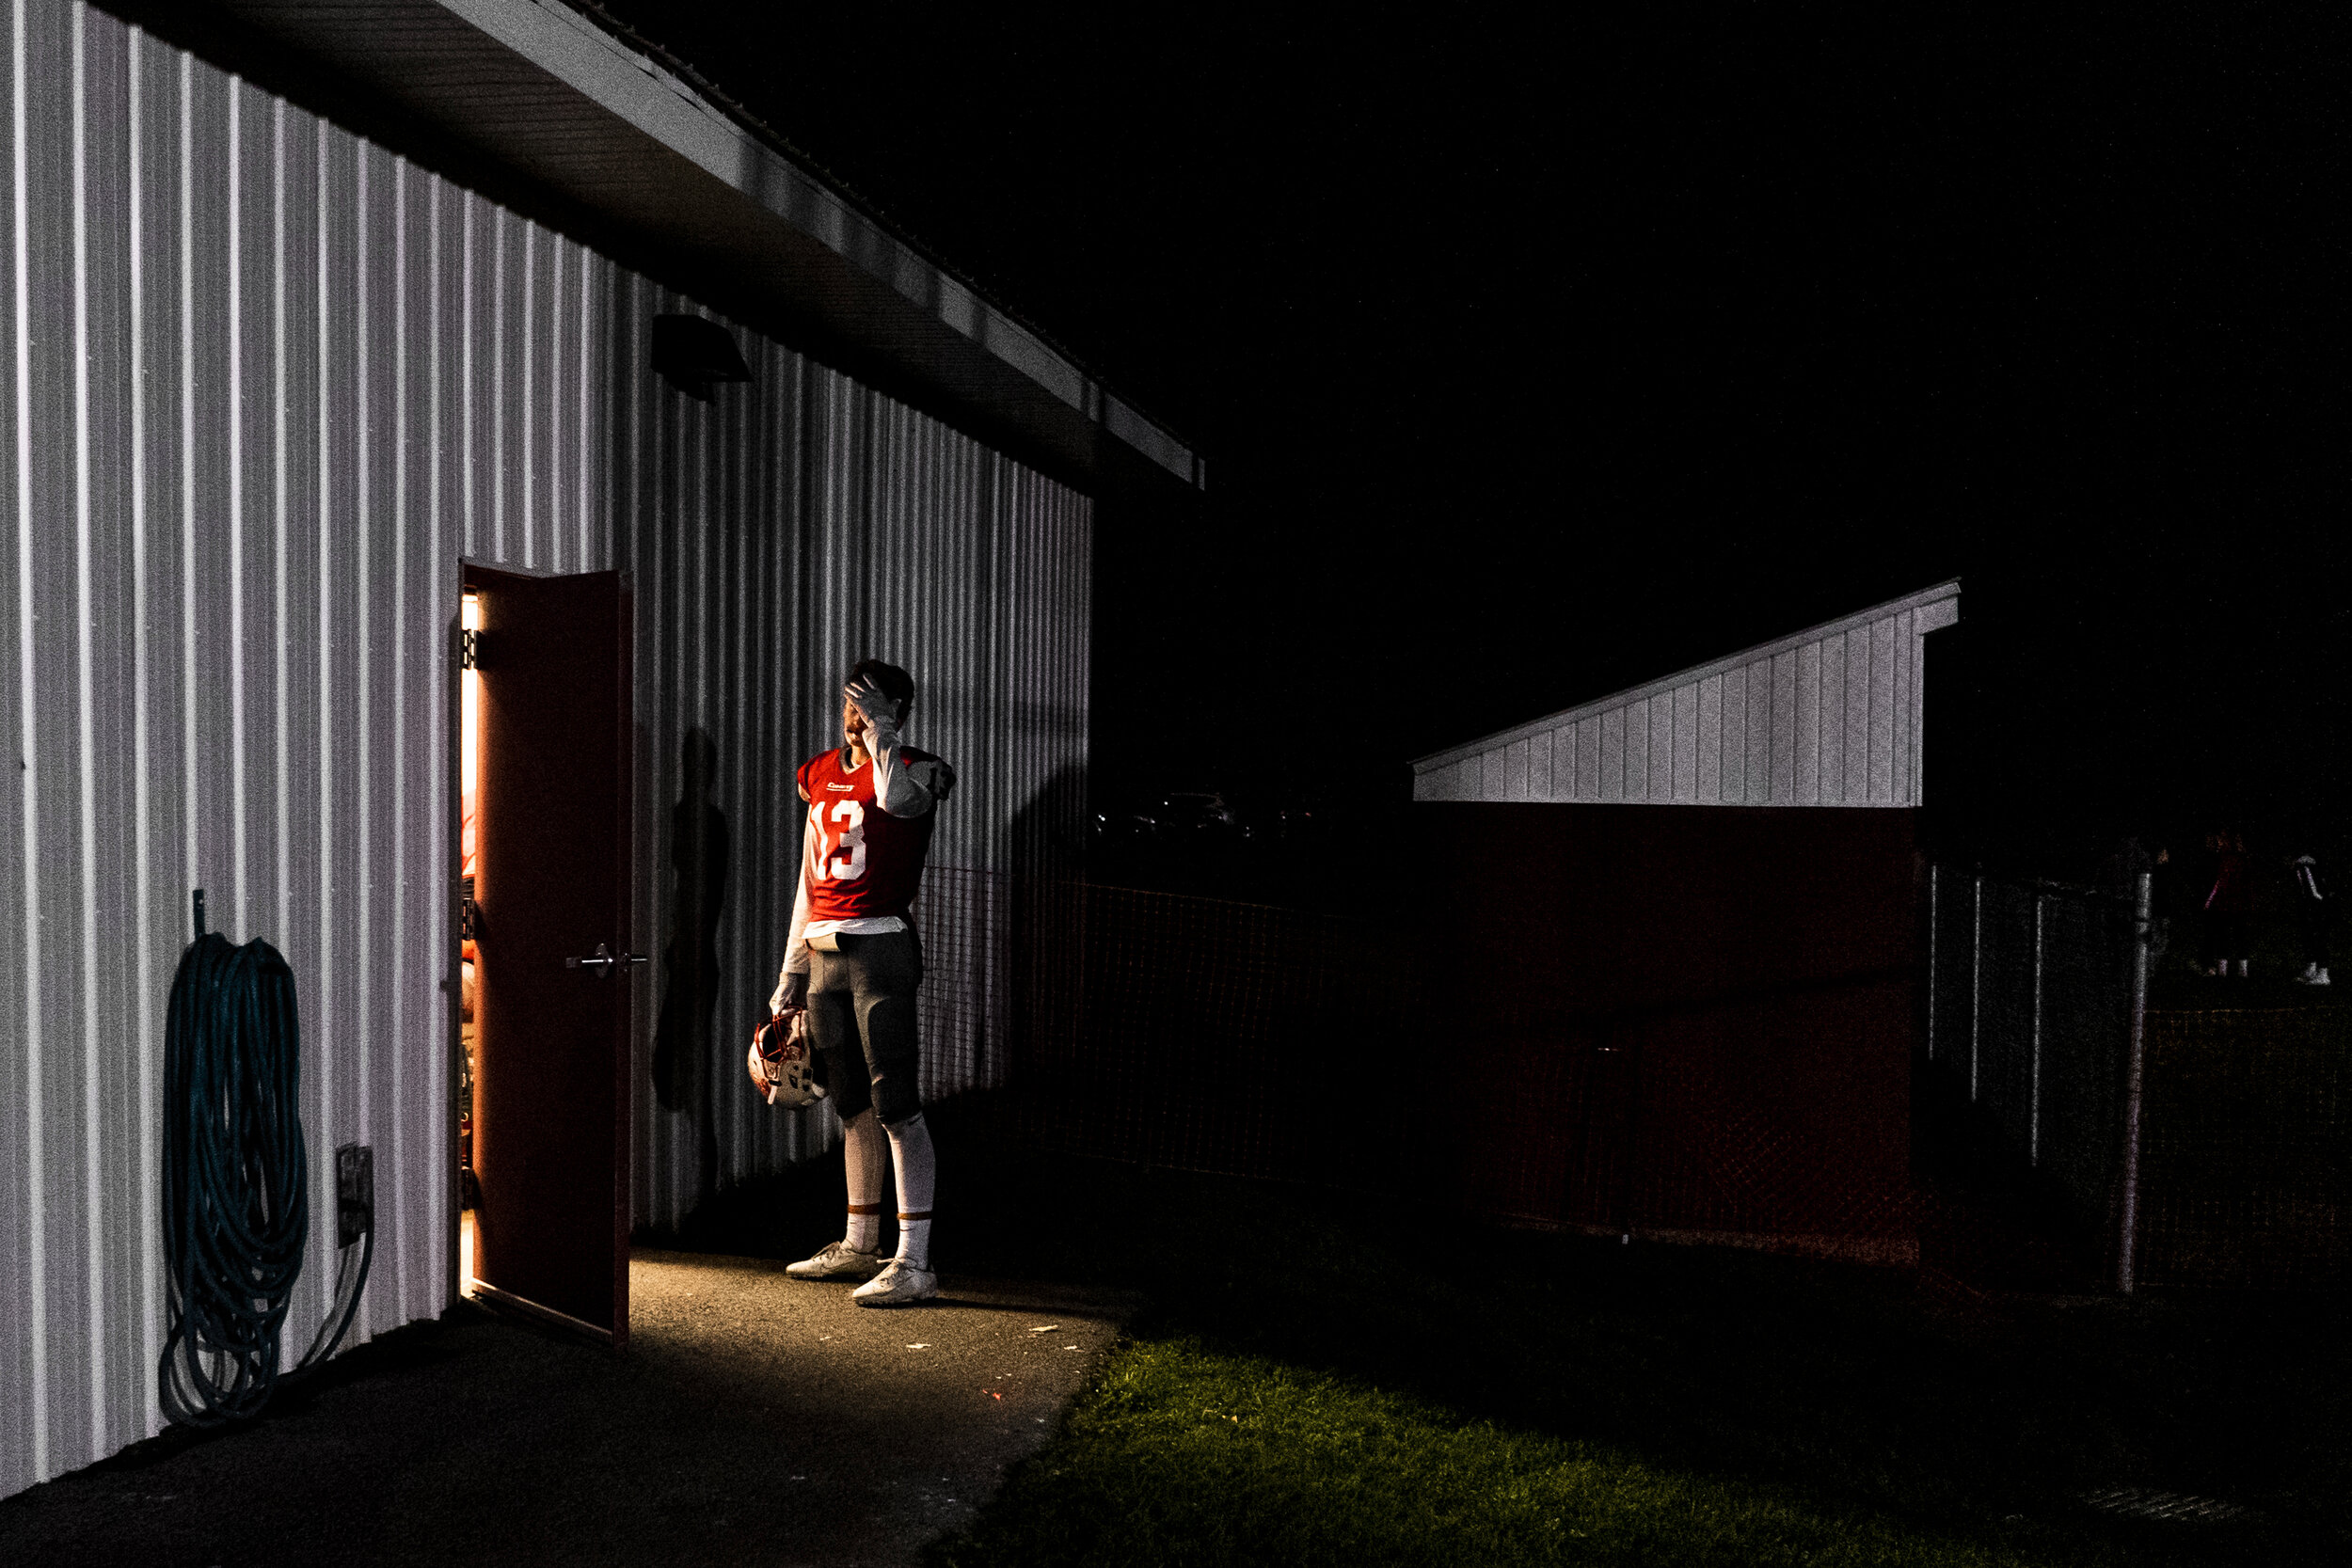 Thomas Albright, of Carthage Football, steps into the beam of light from the open door of the locker room during halftime of their game against Indian River at home in Carthage, NY.